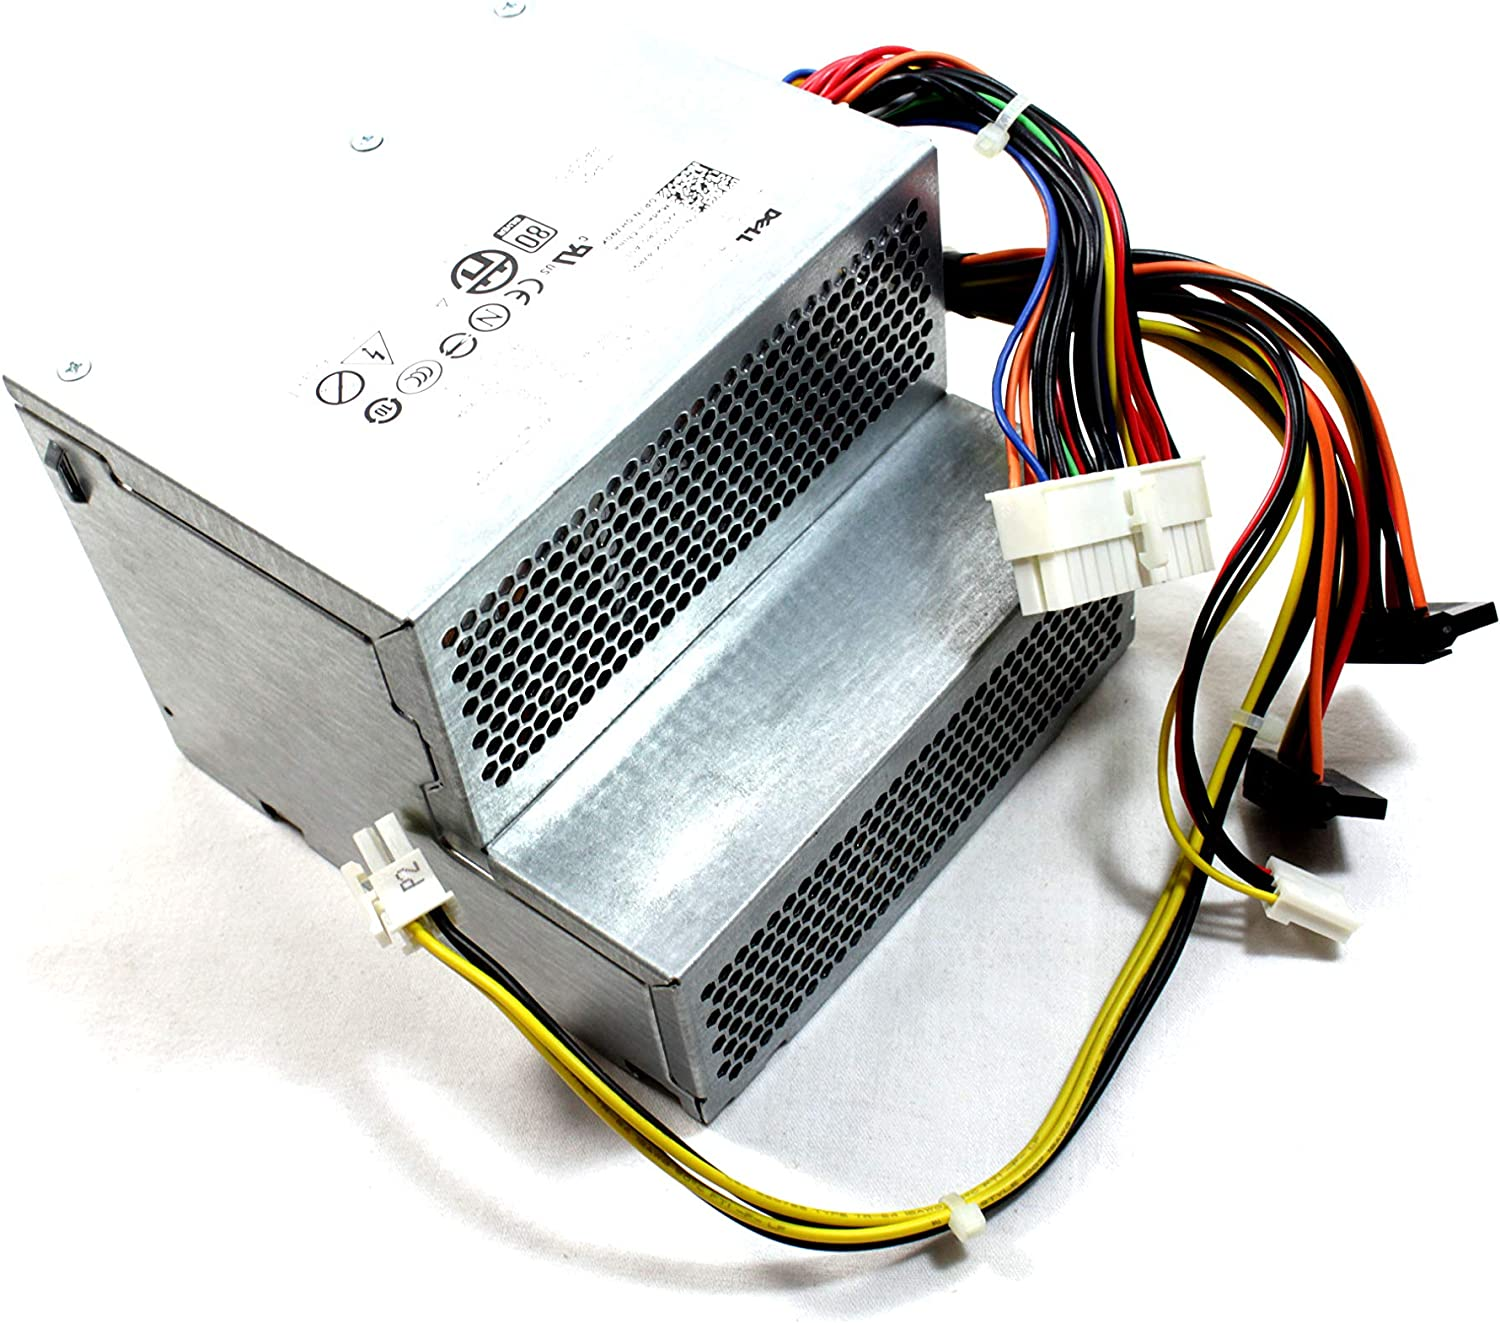 Genuine Dell 280W Replacement Power Supply Unit Power Brick For Dell Optiplex 360, 380 Desktop Systems Replaces Dell Part Numbers: H790K, H797K, M619F, M618F, D233N Replaces Dell Model Numbers: H235PD-01, D235PD-00, HP-D2553A0, B235PD-00